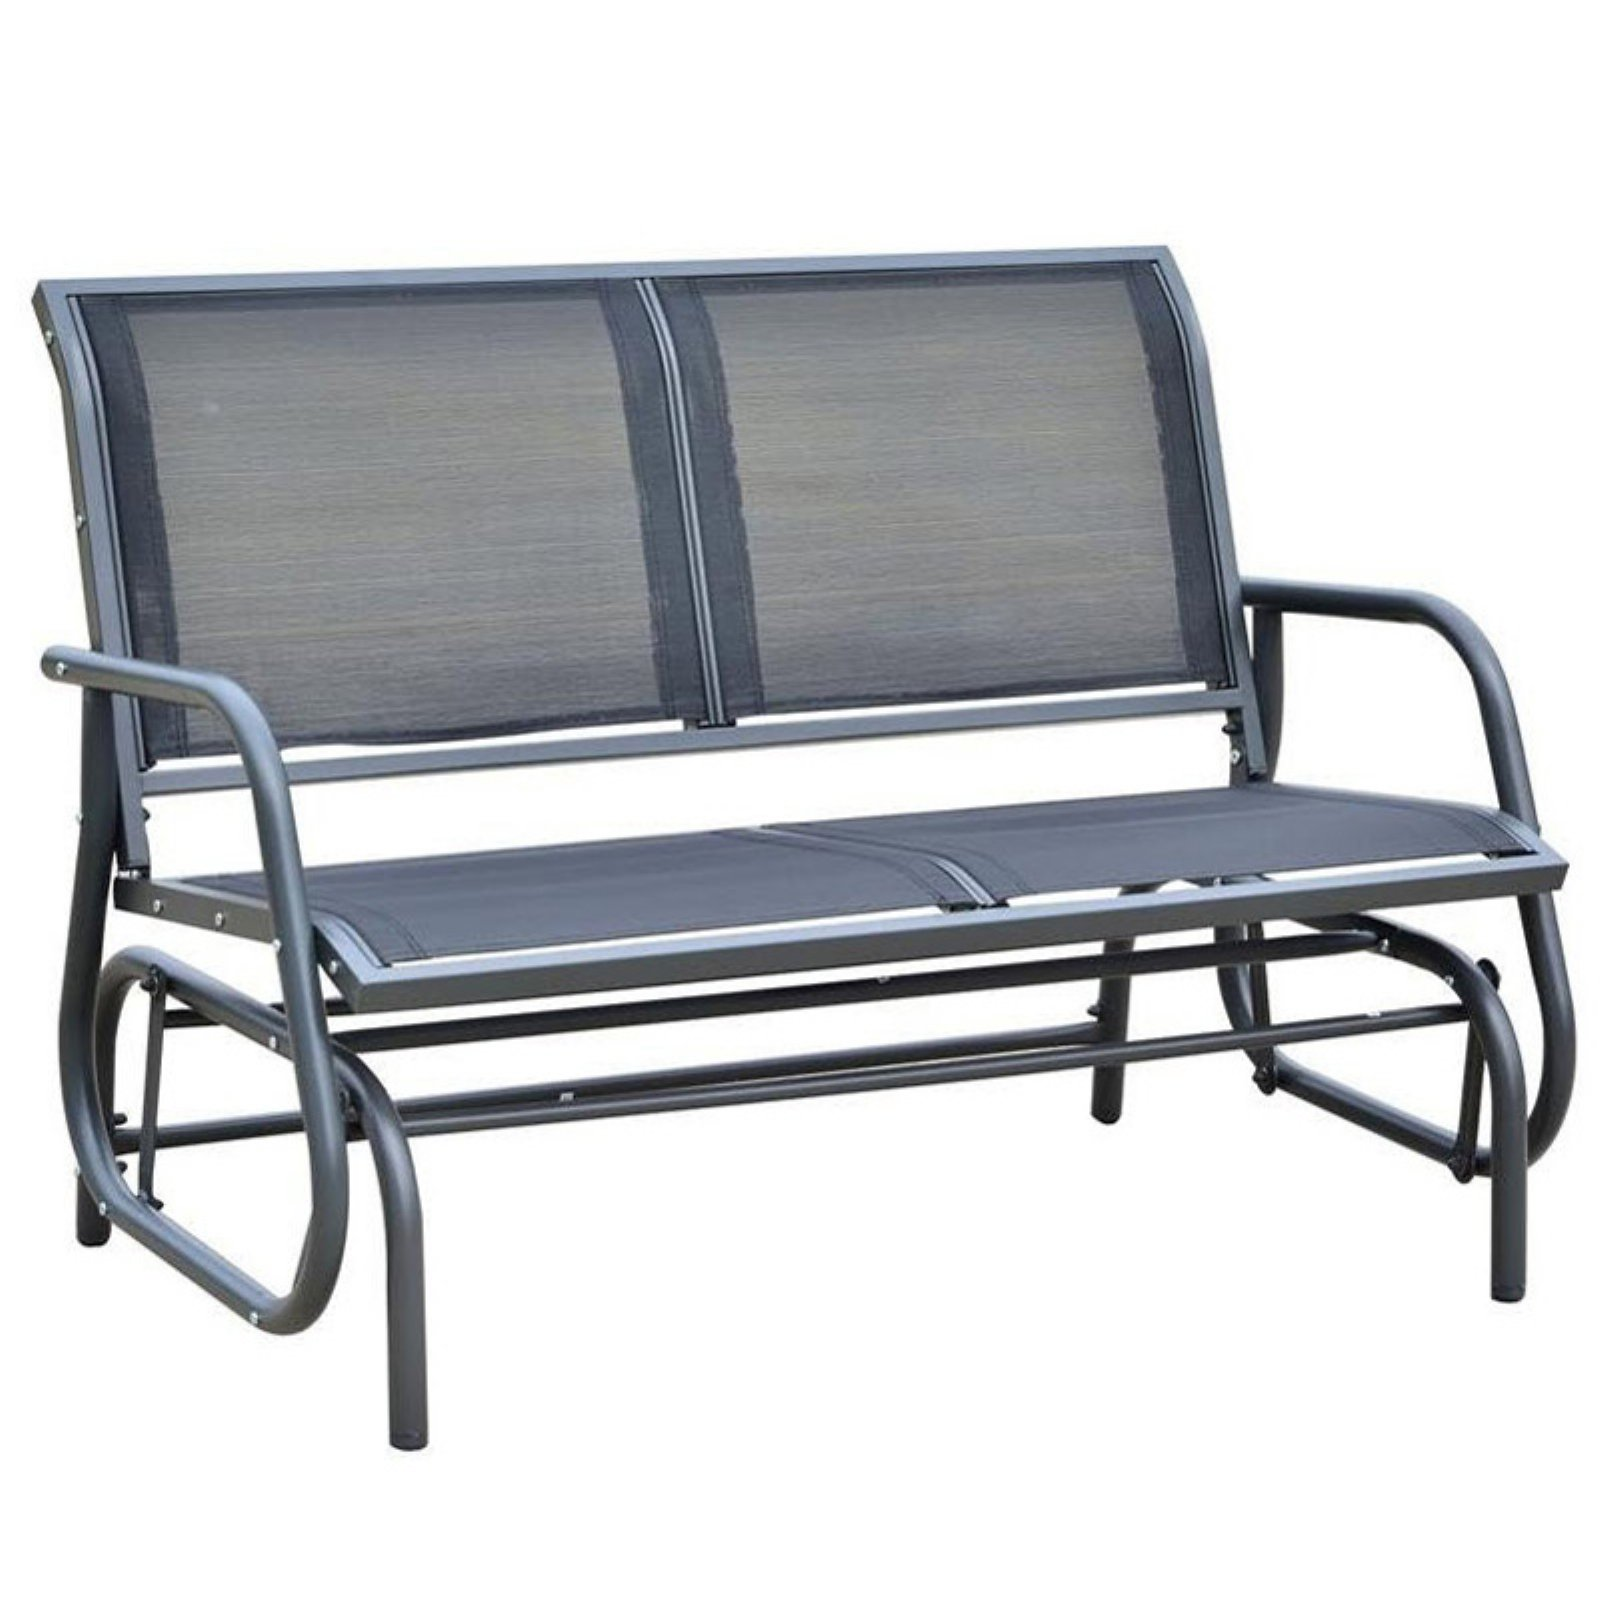 Black Bench Outsunny 48 In Black Steel Outdoor Glider Bench